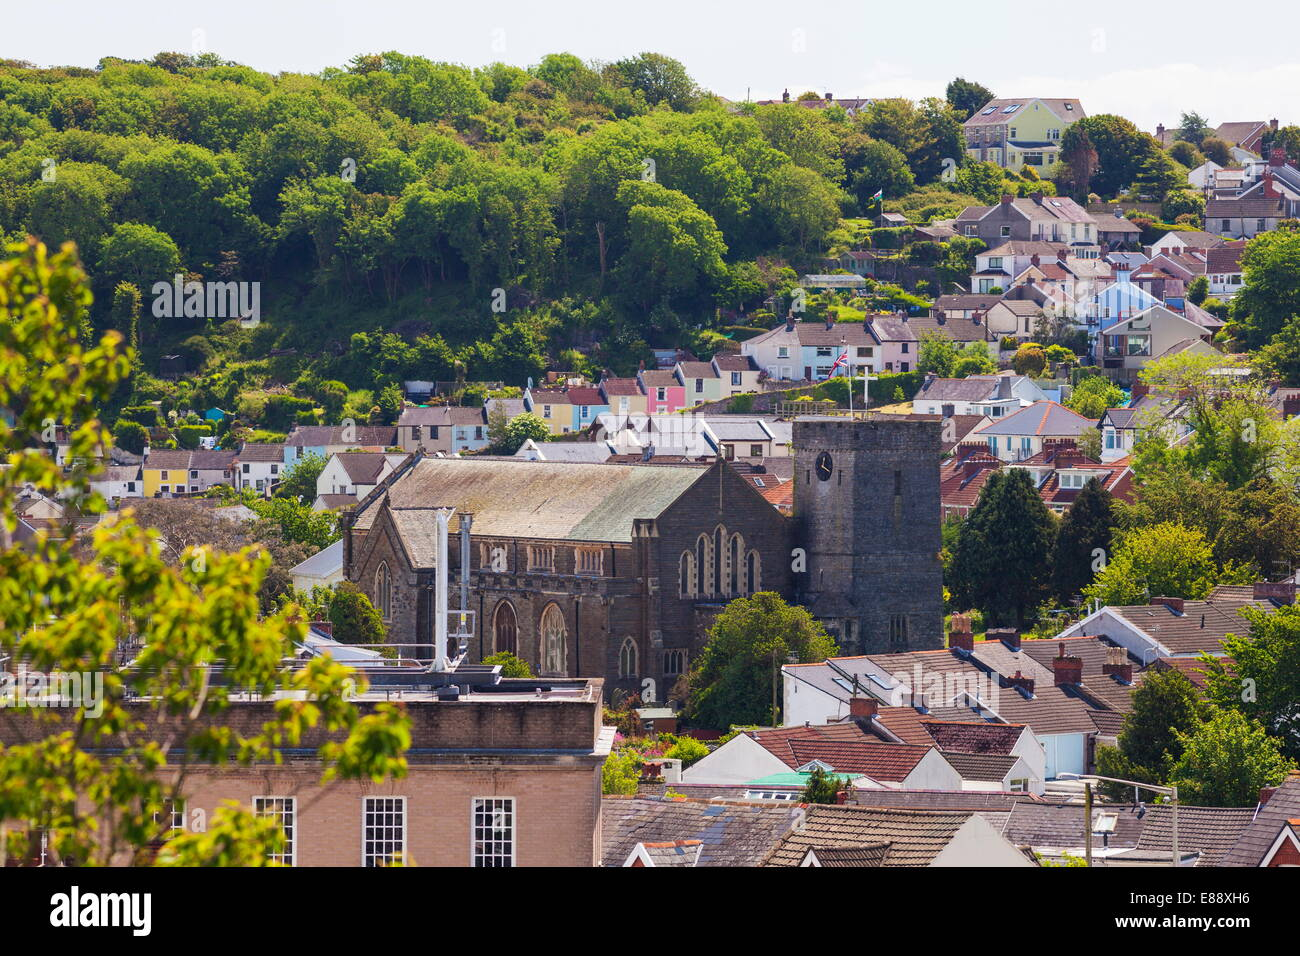 Marmonne, Gower, Swansea, Pays de Galles, Royaume-Uni, Europe Photo Stock